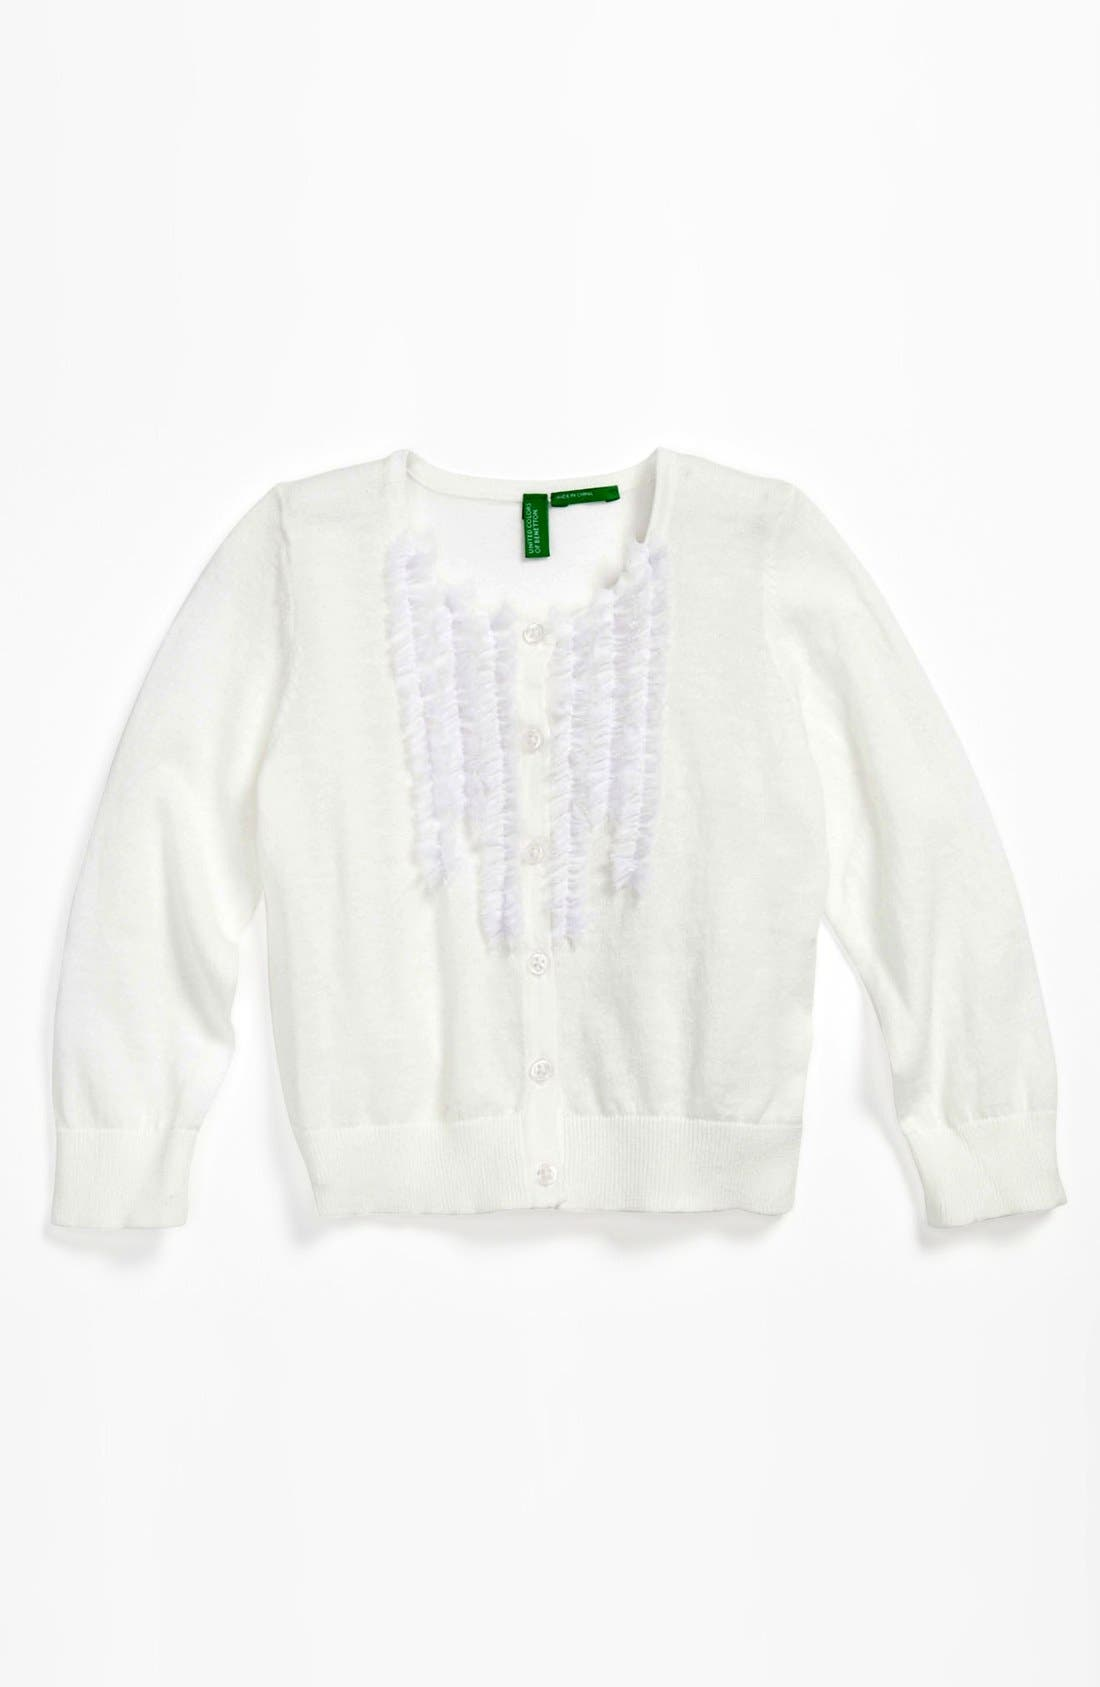 Main Image - United Colors of Benetton Kids Cardigan (Toddler)